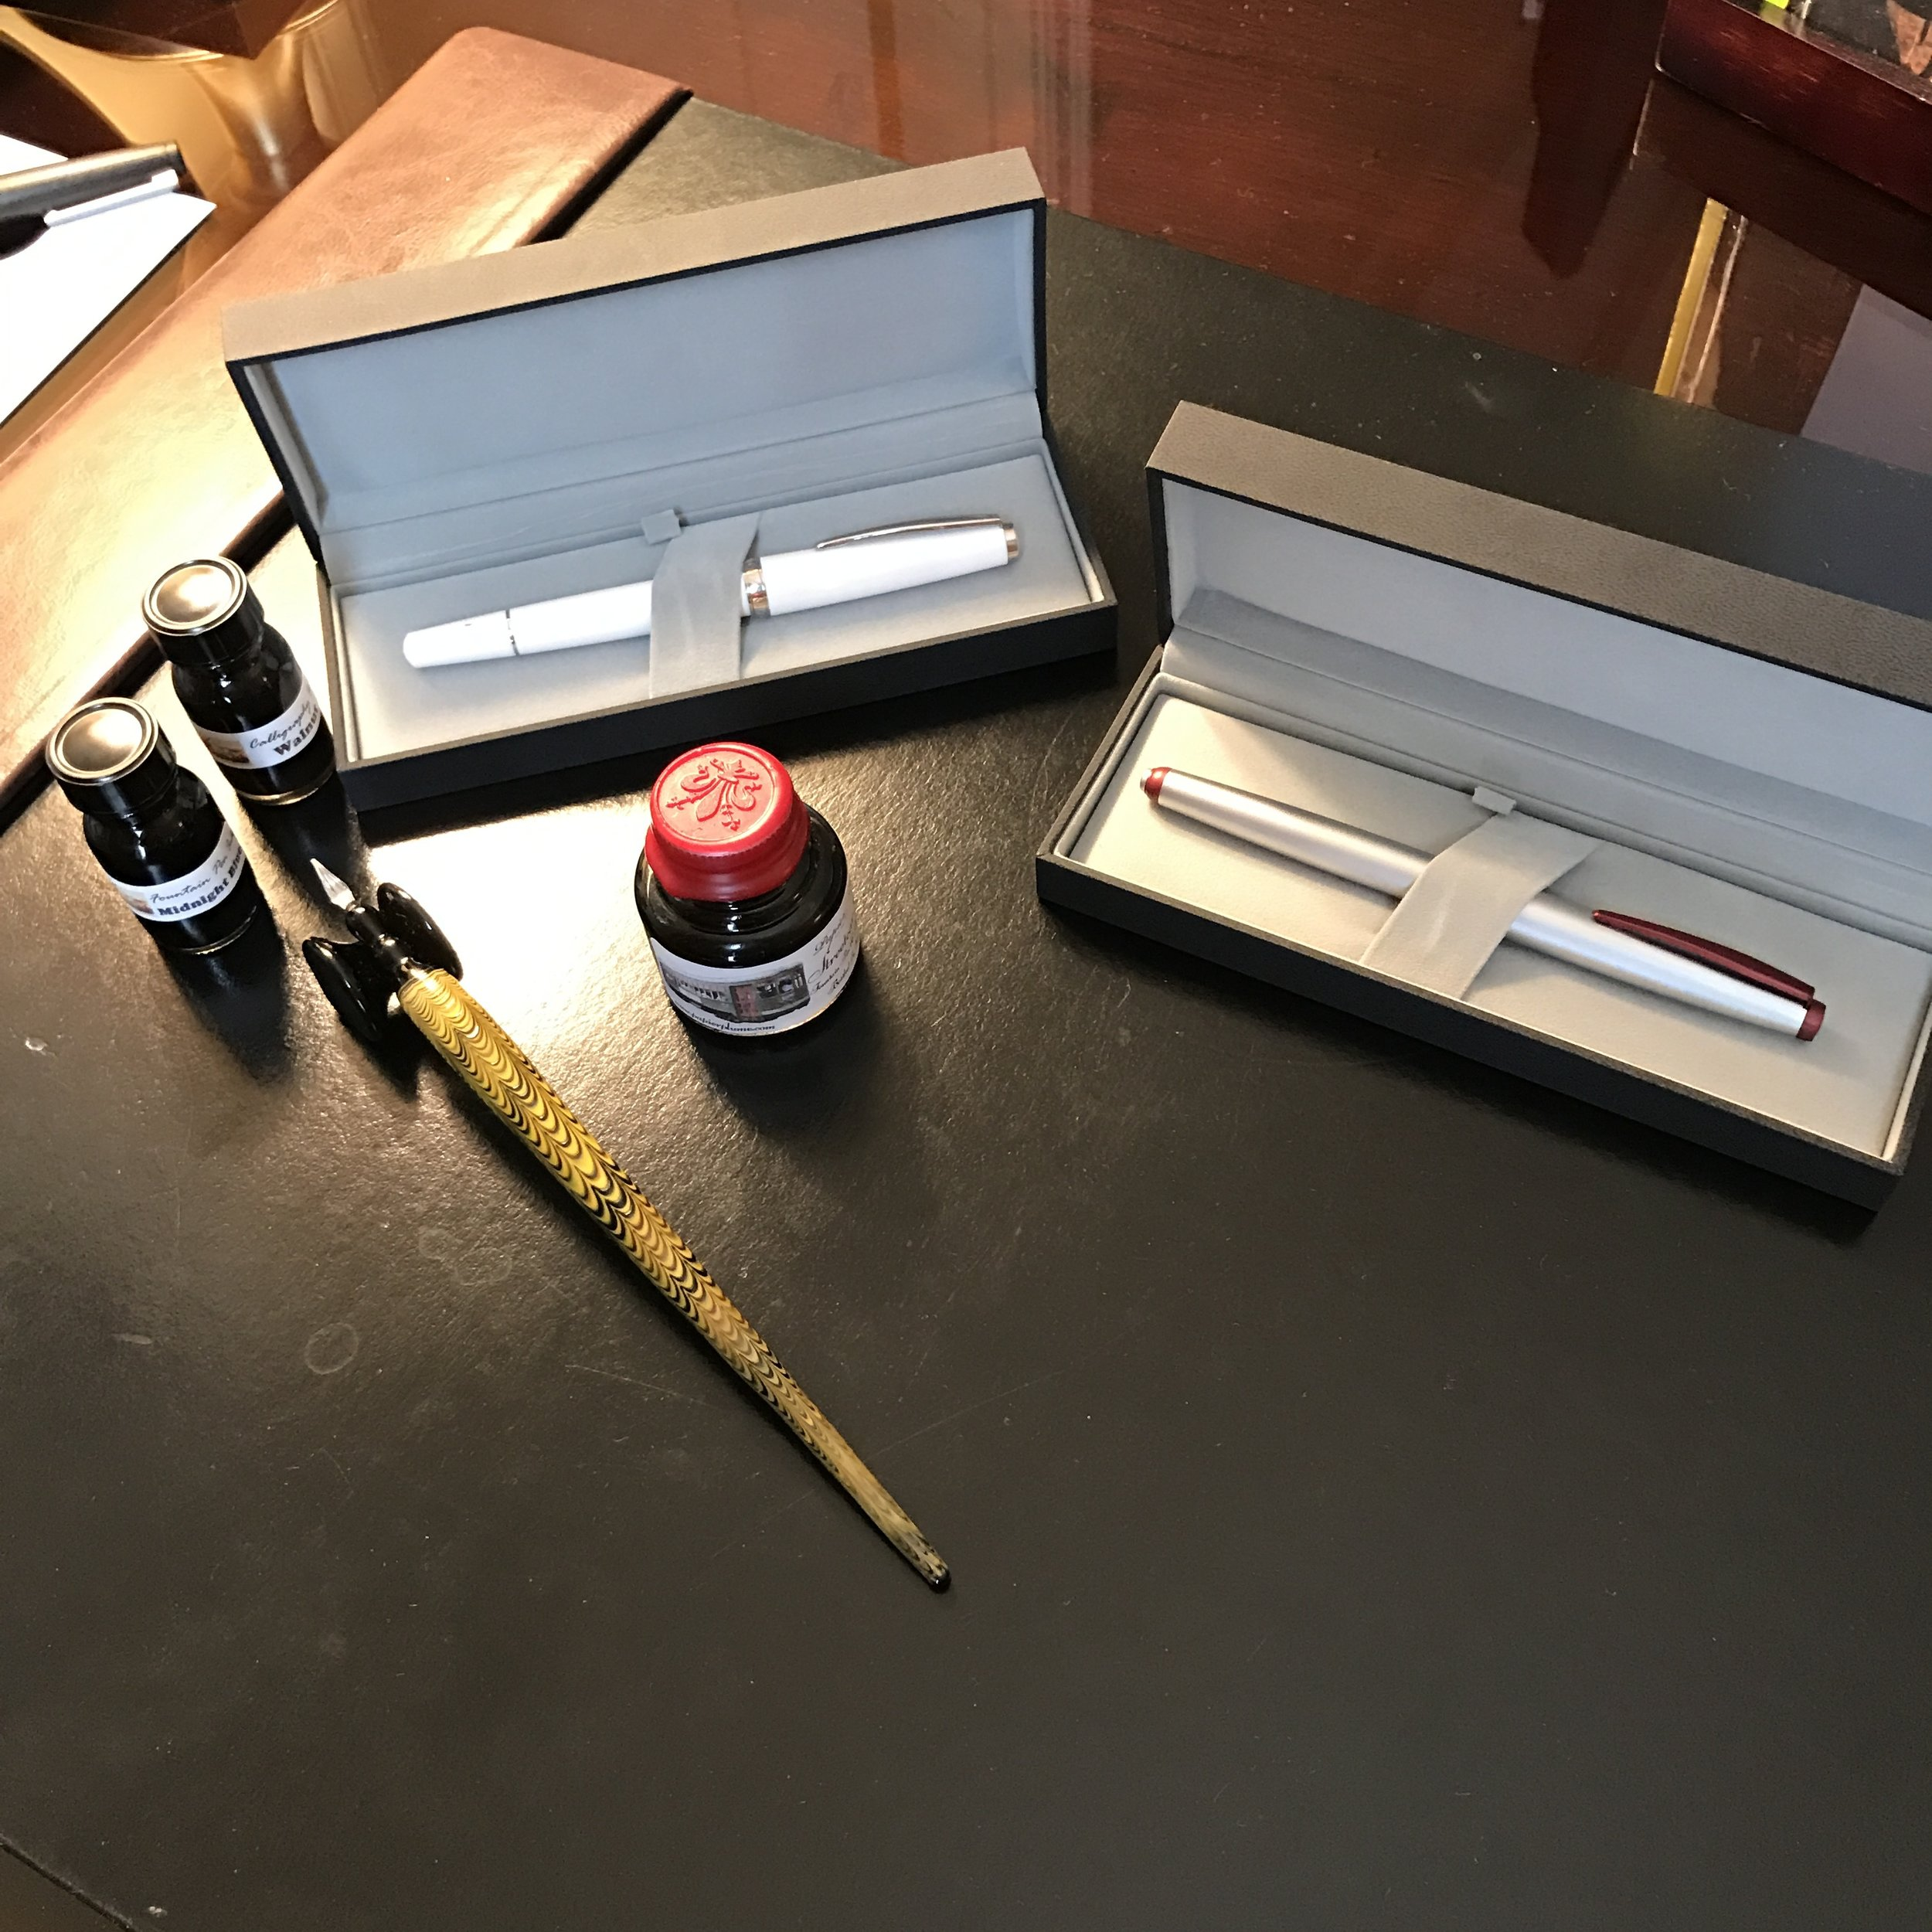 Calligraphy Pens B&m The Gentleman Stationer